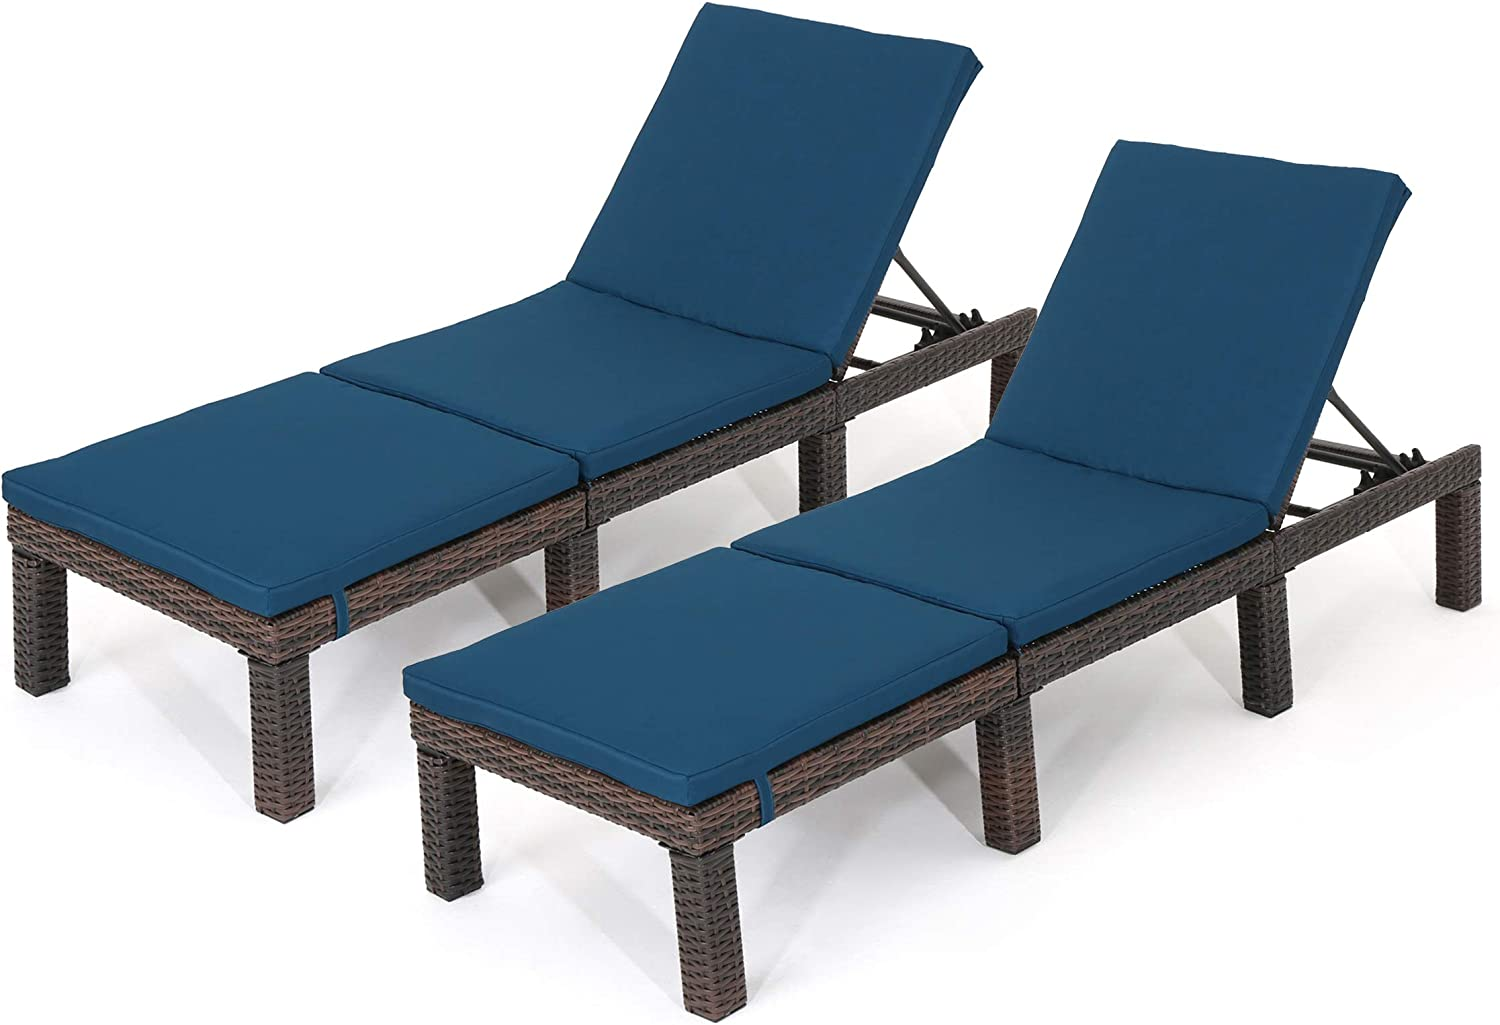 Christopher Knight Home Joyce Outdoor Multibrown Wicker Chaise Lounge with Blue Water Resistant Cushion Set of 2